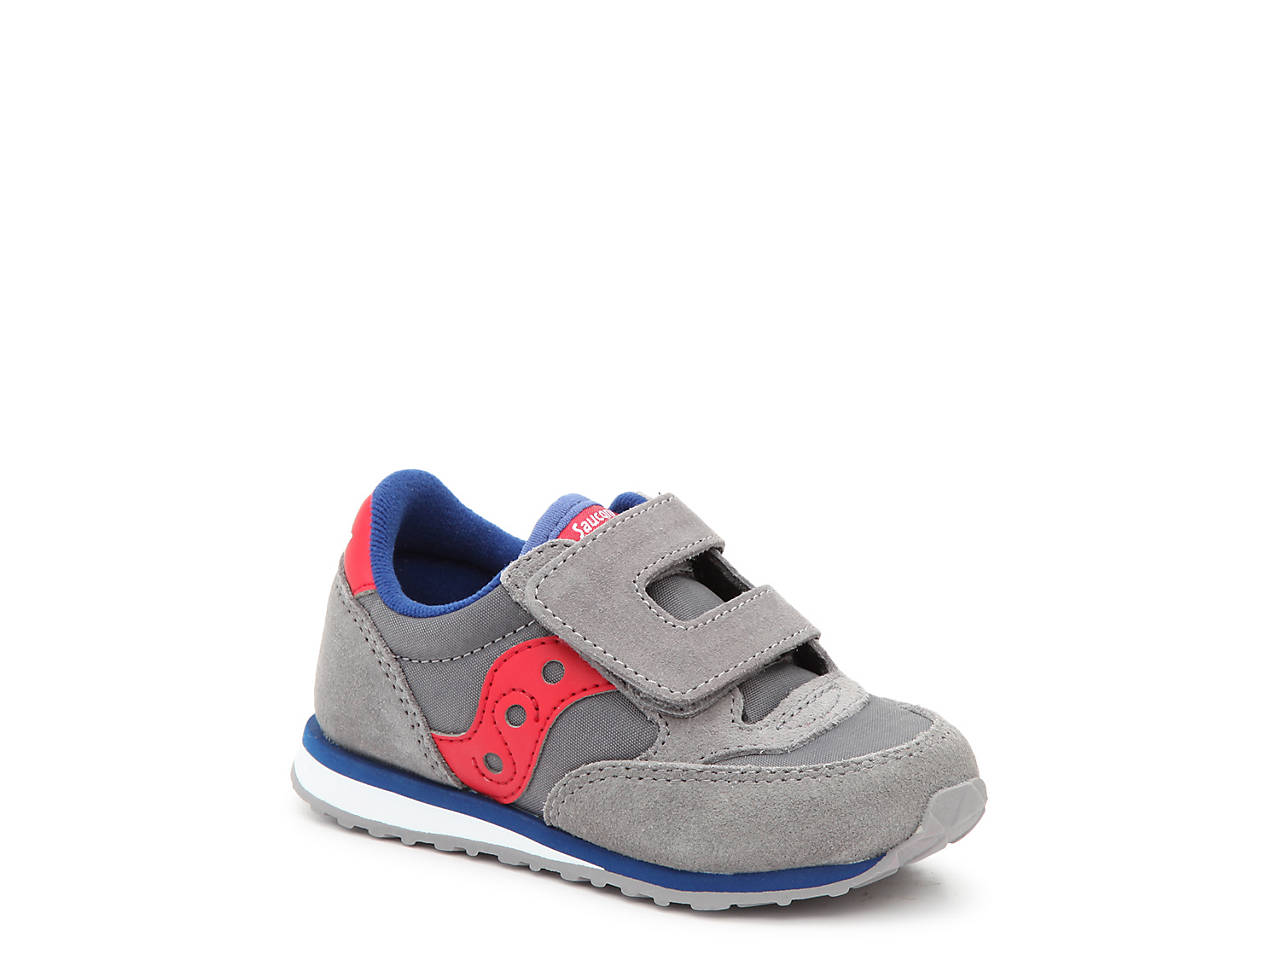 827d81e446a0 Saucony Baby Jazz Infant   Toddler Sneaker Kids Shoes